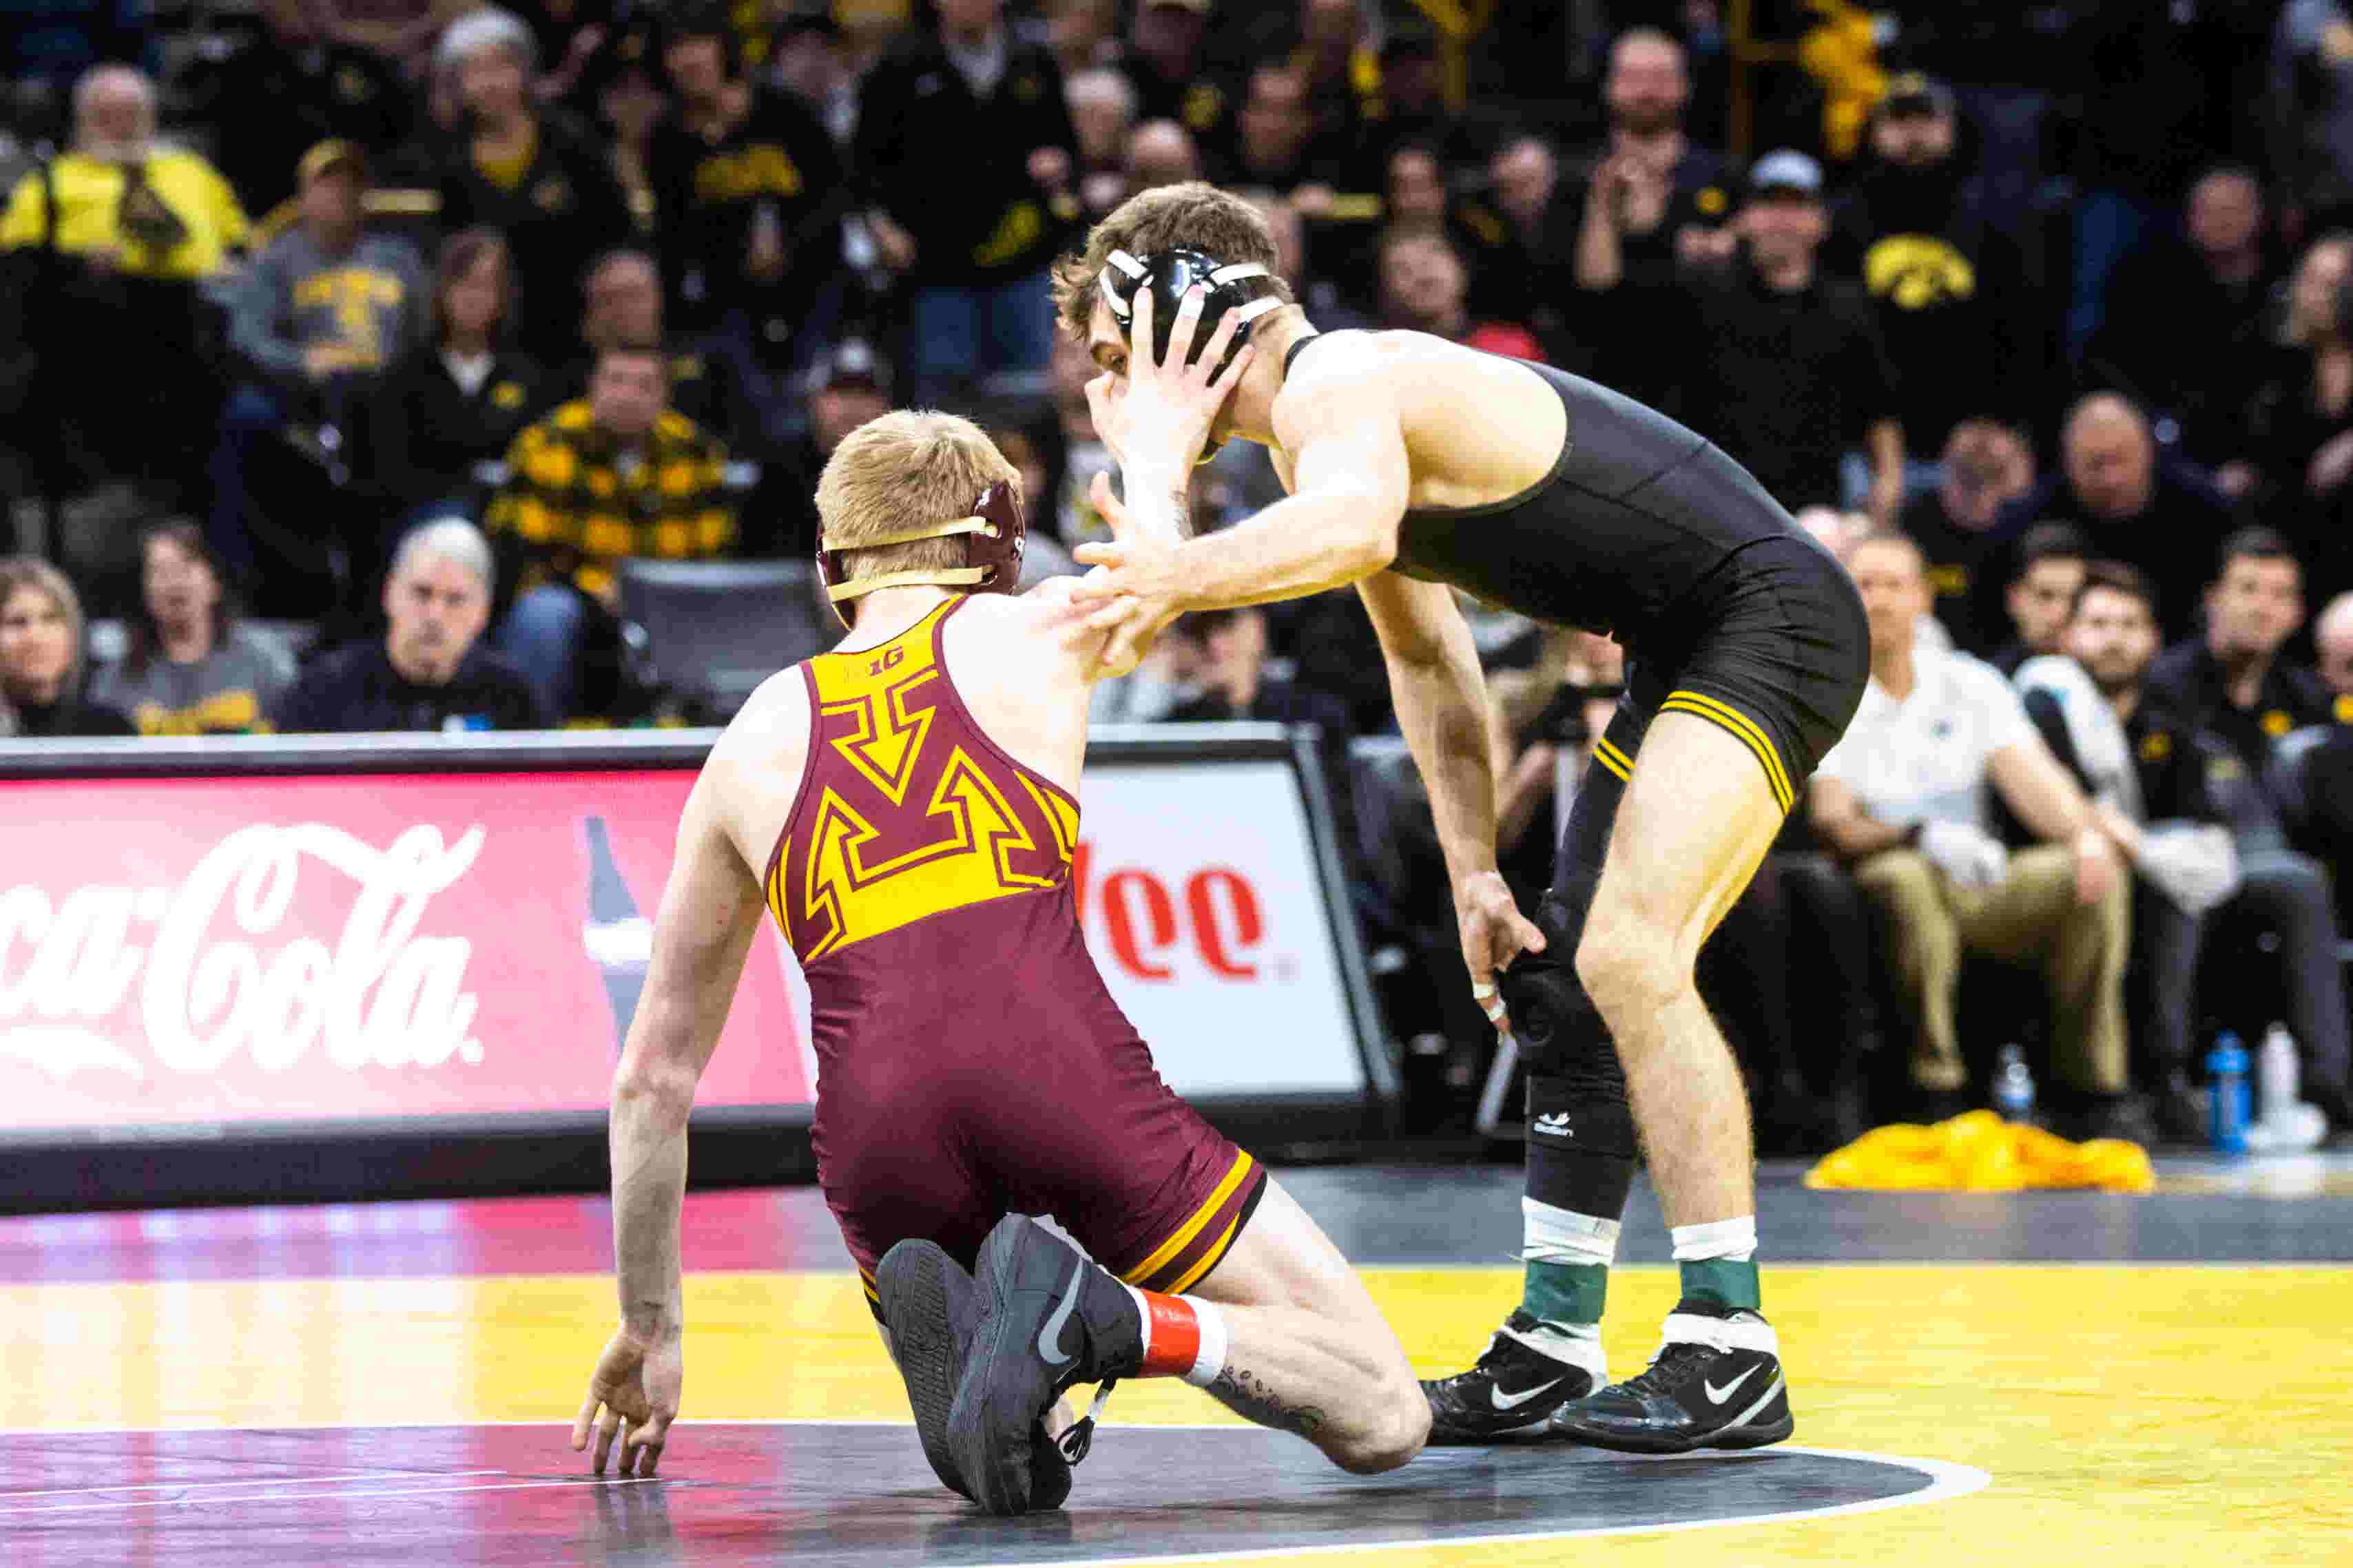 Iowa's Tom Brands: Austin DeSanto 'is not a circus act'